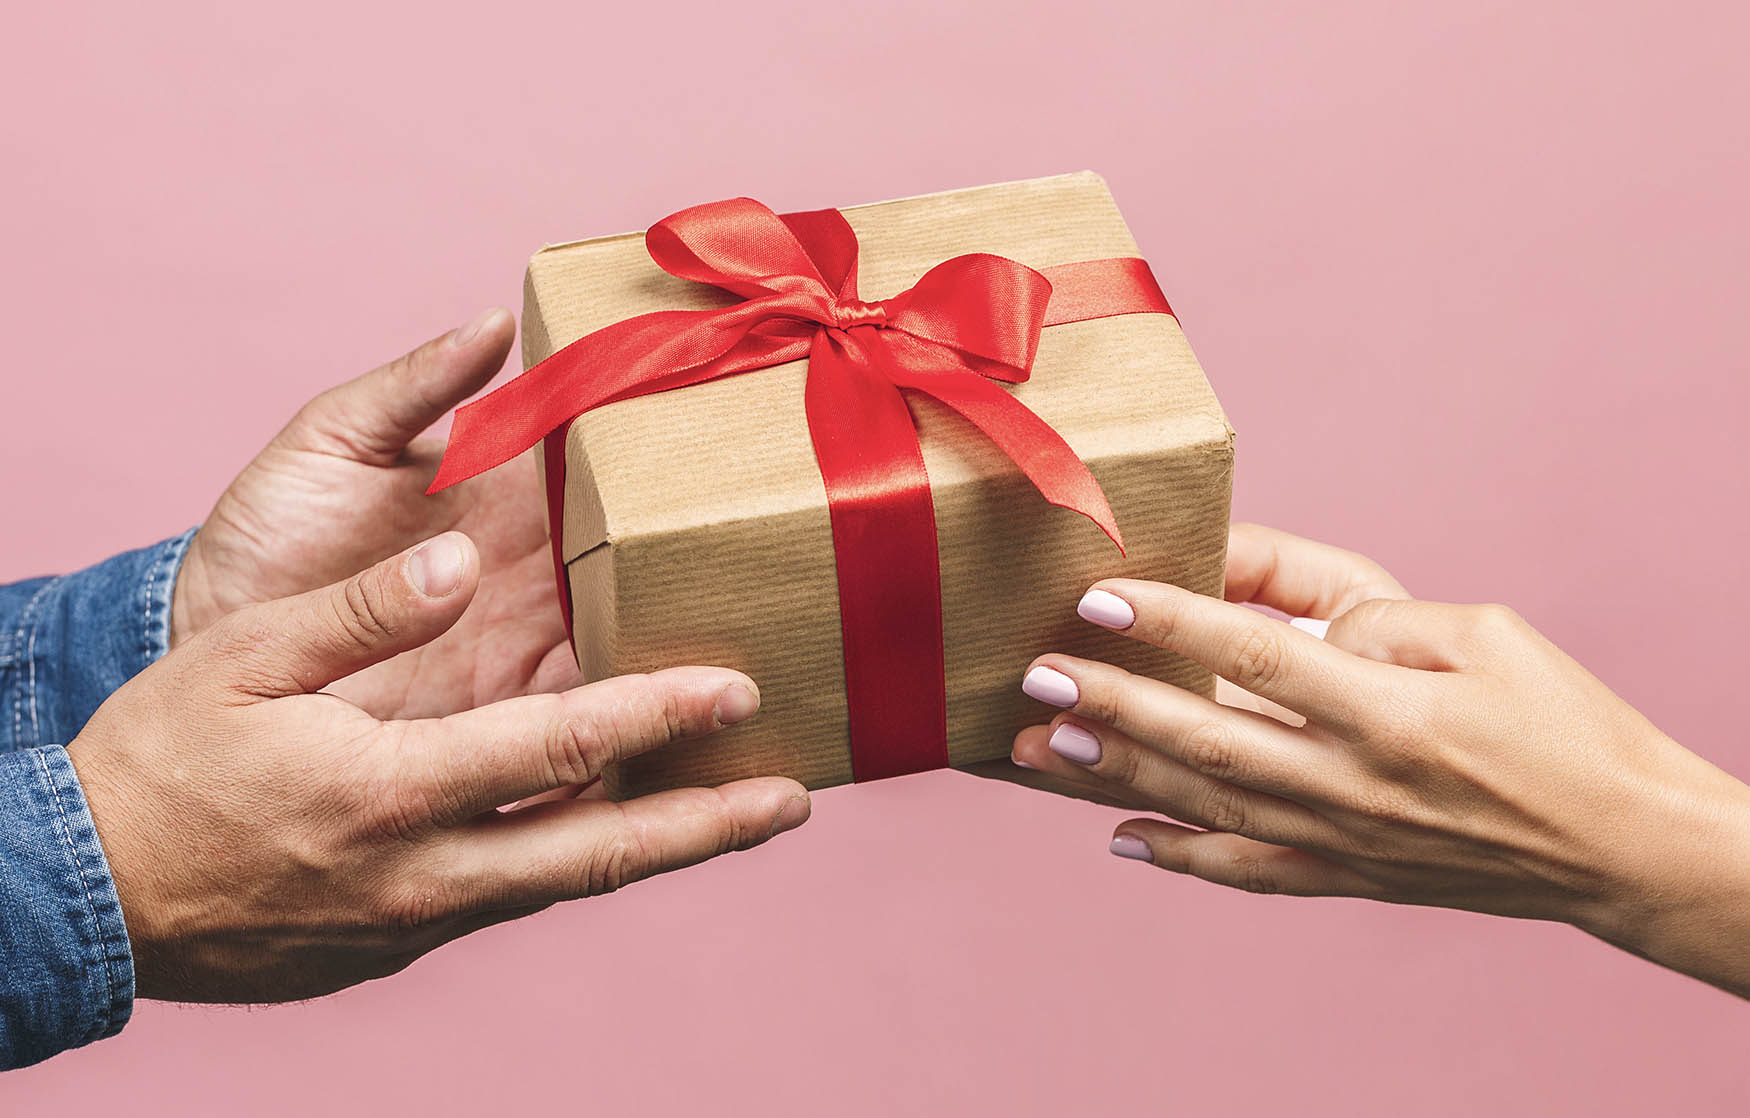 Avoid these terrible Christmas gift ideas unless you want to disappoint someone